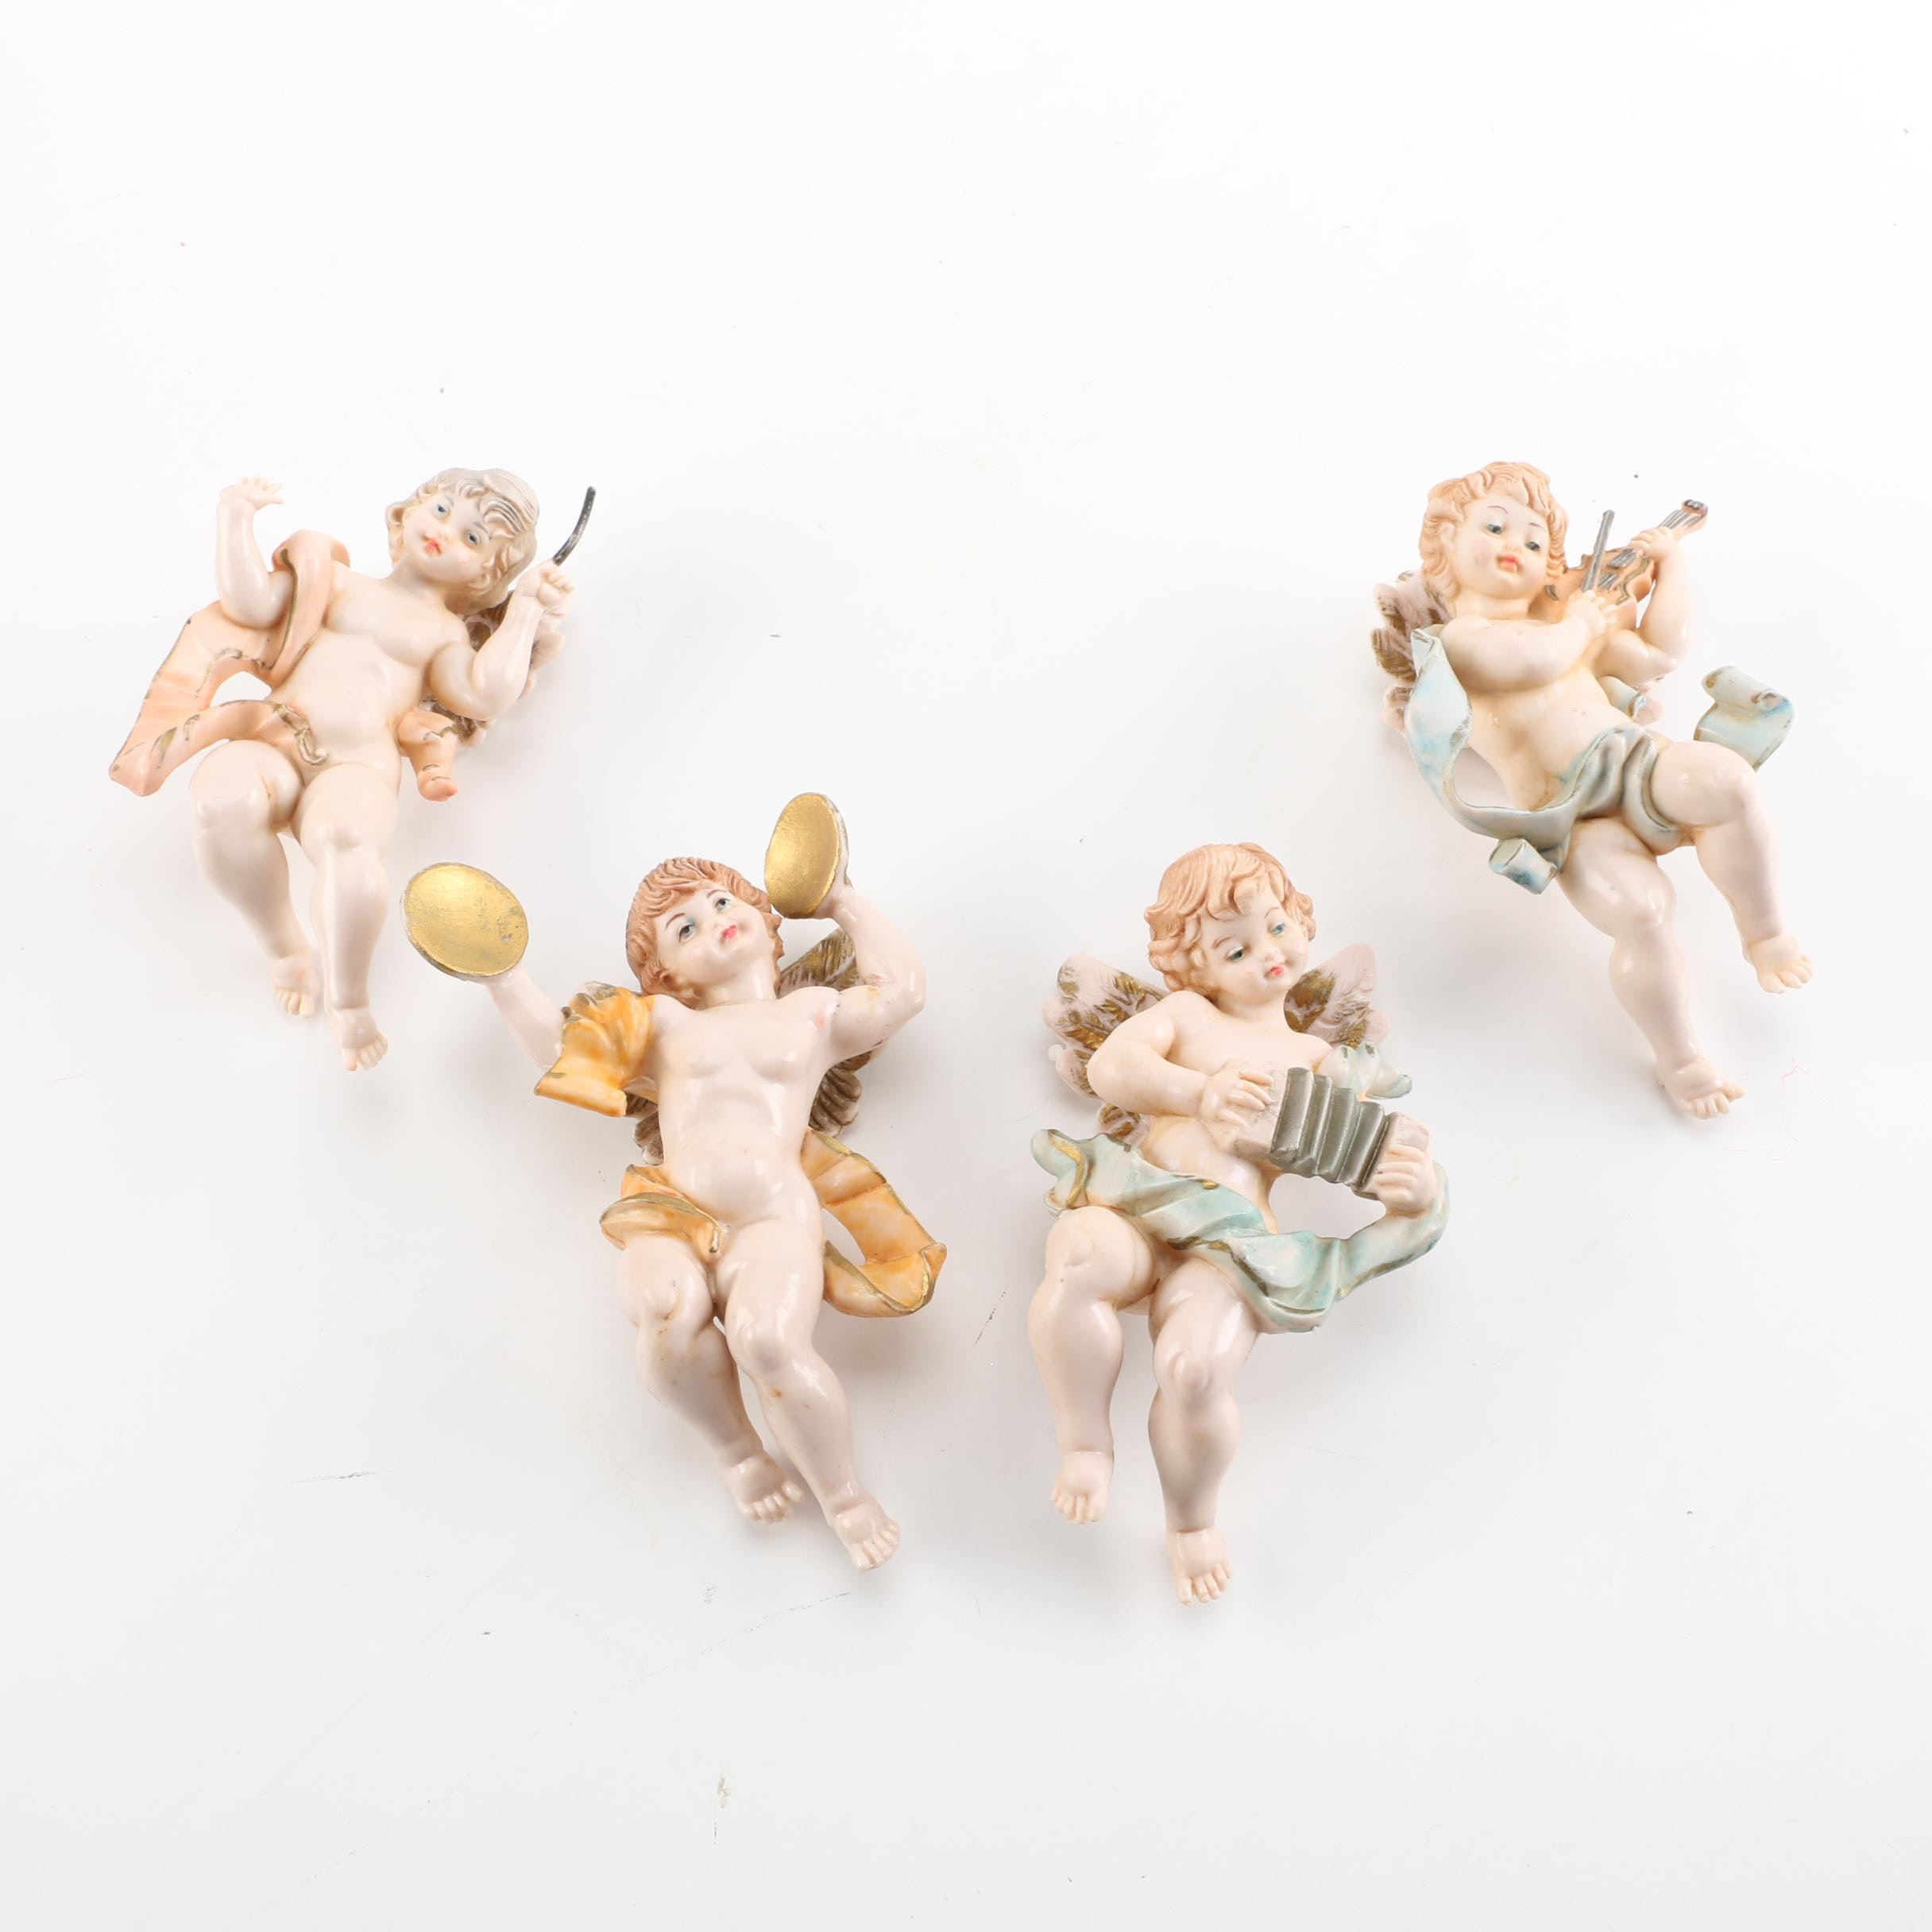 Porcelain Angel Figurines Playing Musical Instruments